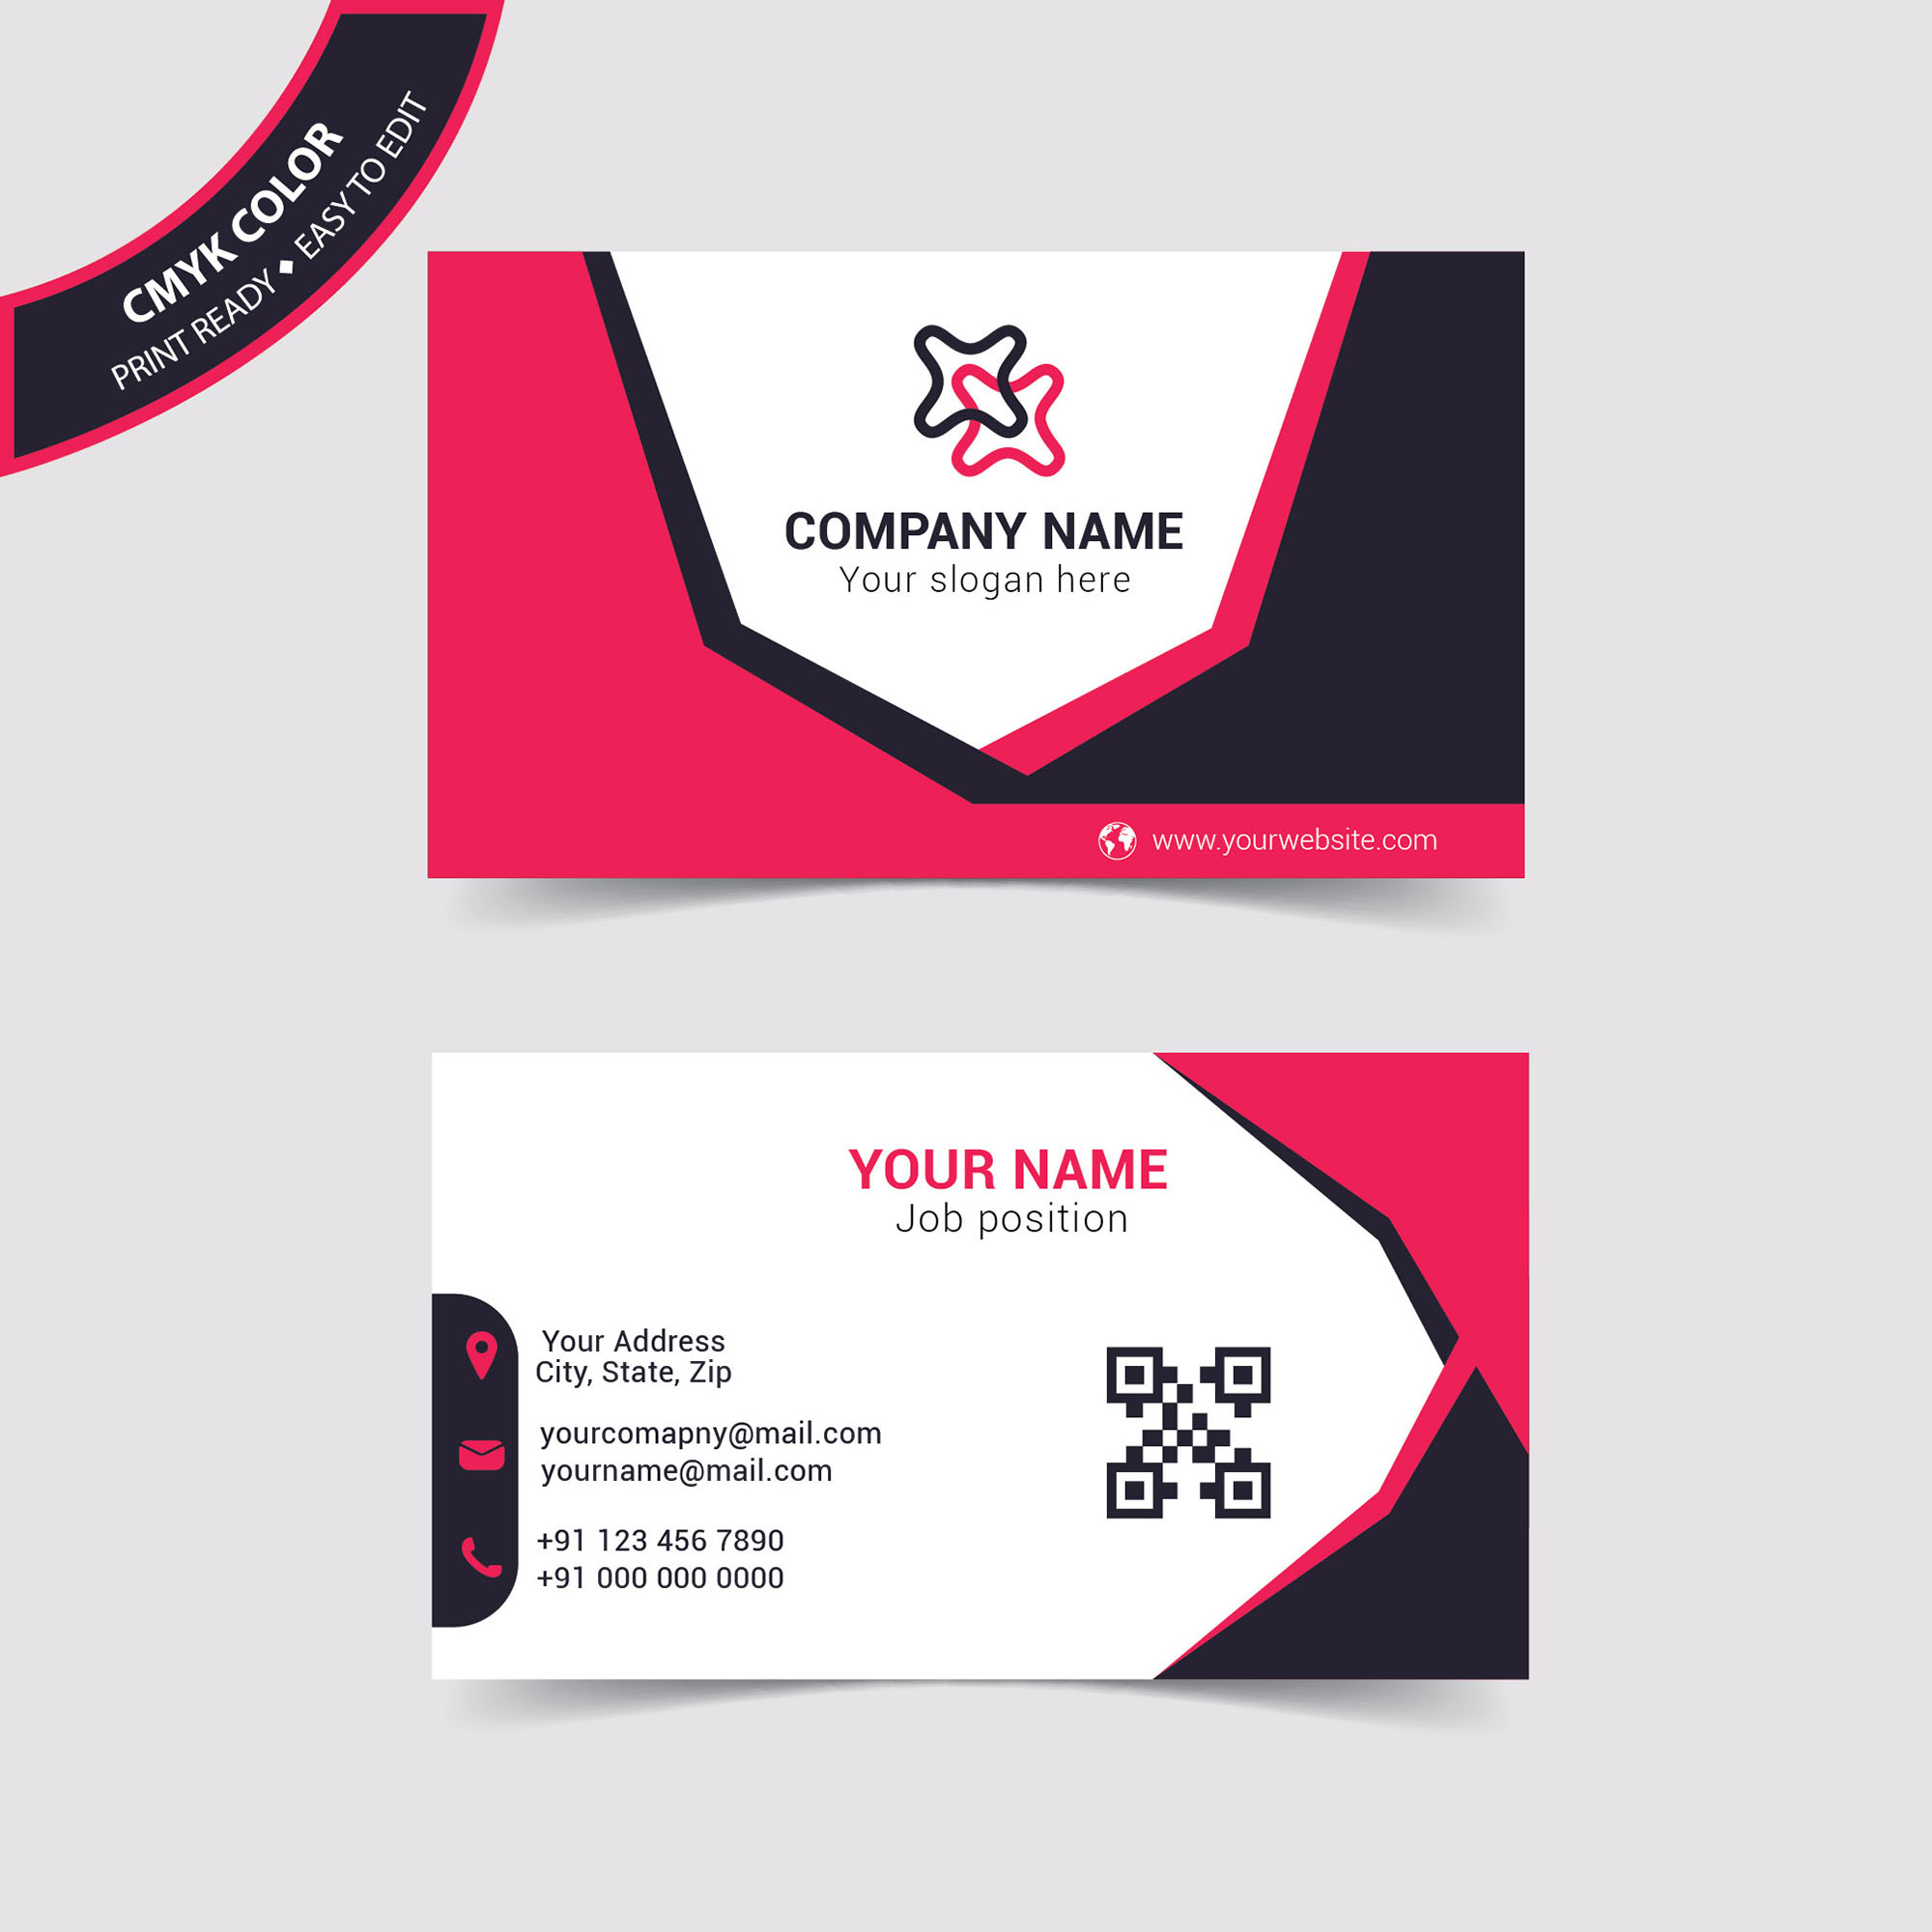 Personal name card design free download print template wisxi business card business cards business card design business card template design templates reheart Images